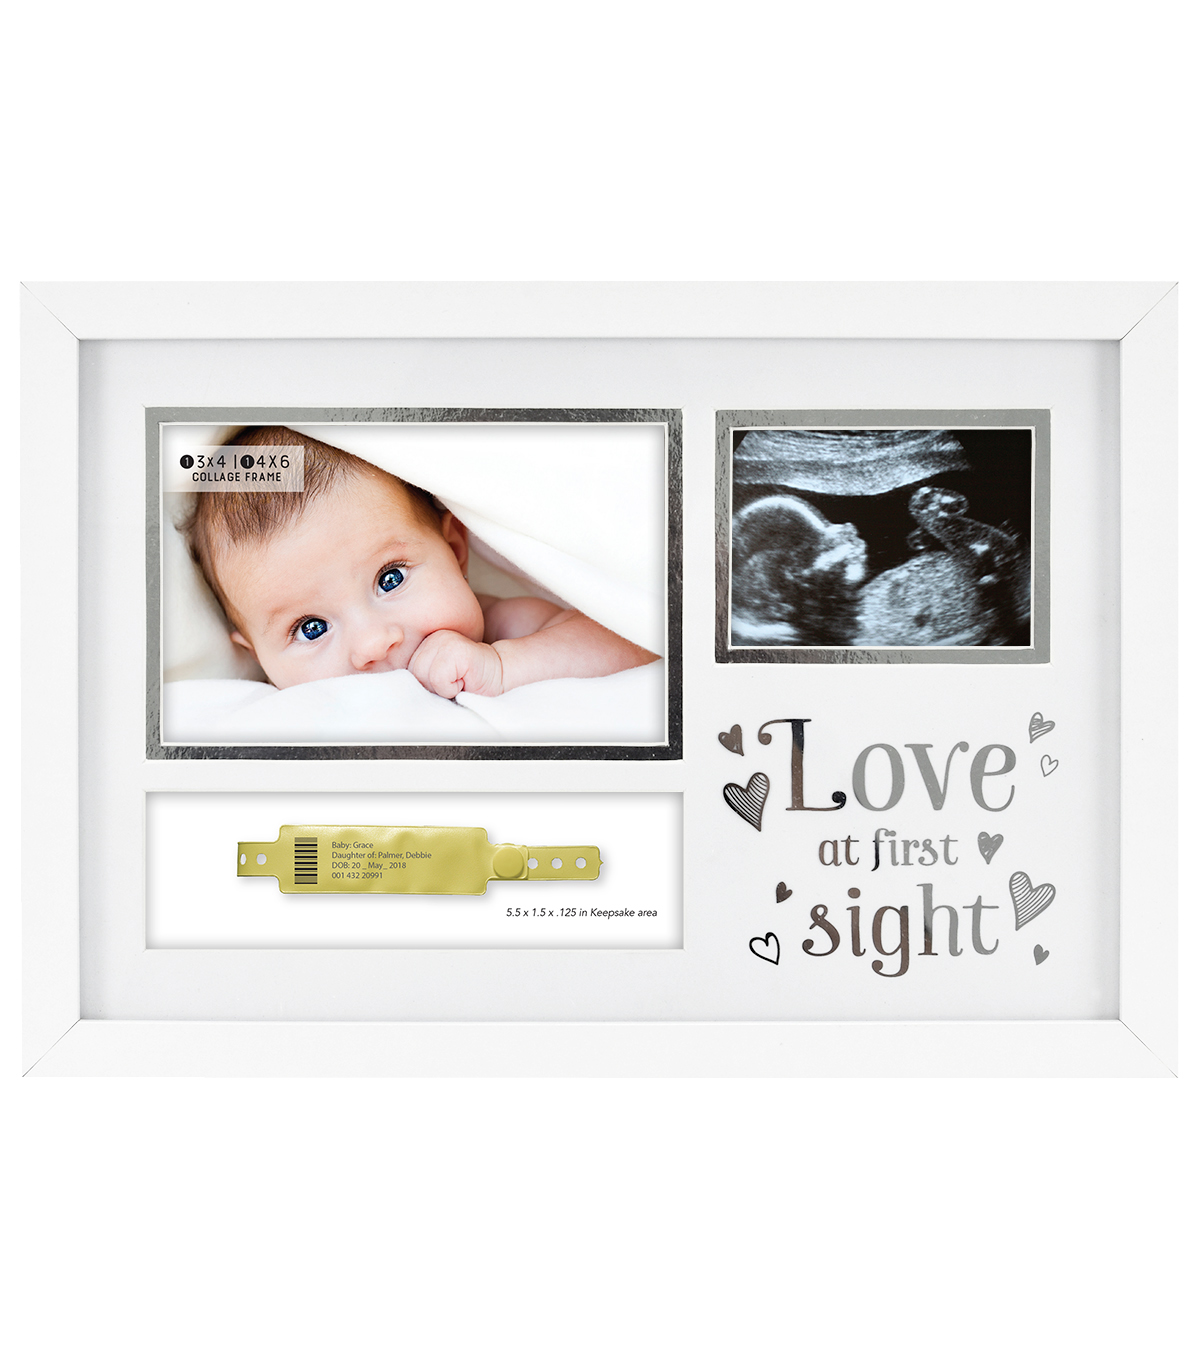 Wood & Glass 3 Image Collage Frame-Love at First Sight on White